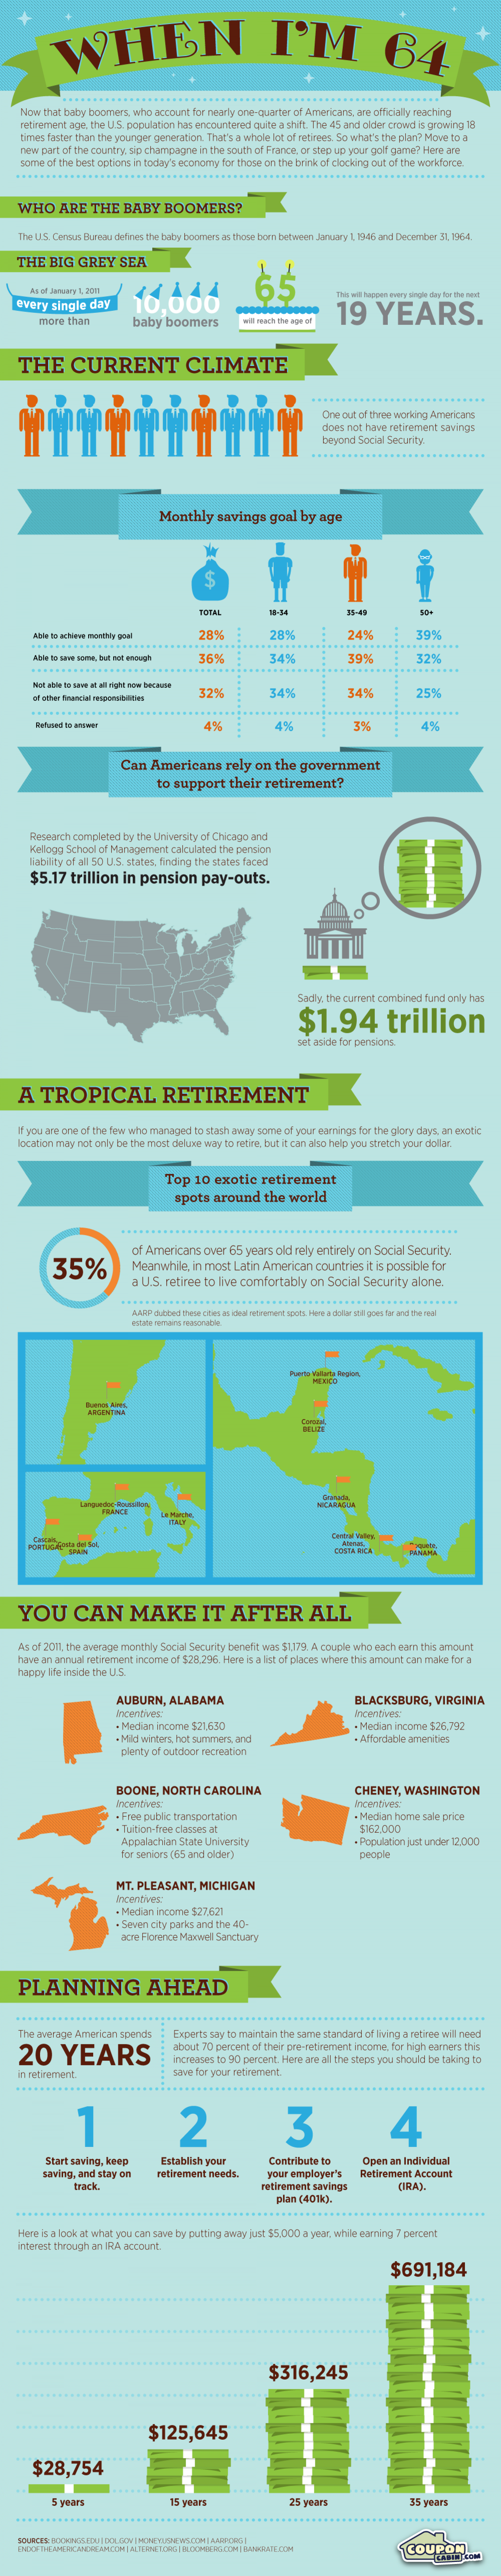 Retirement Planning: When I'm 64 Infographic